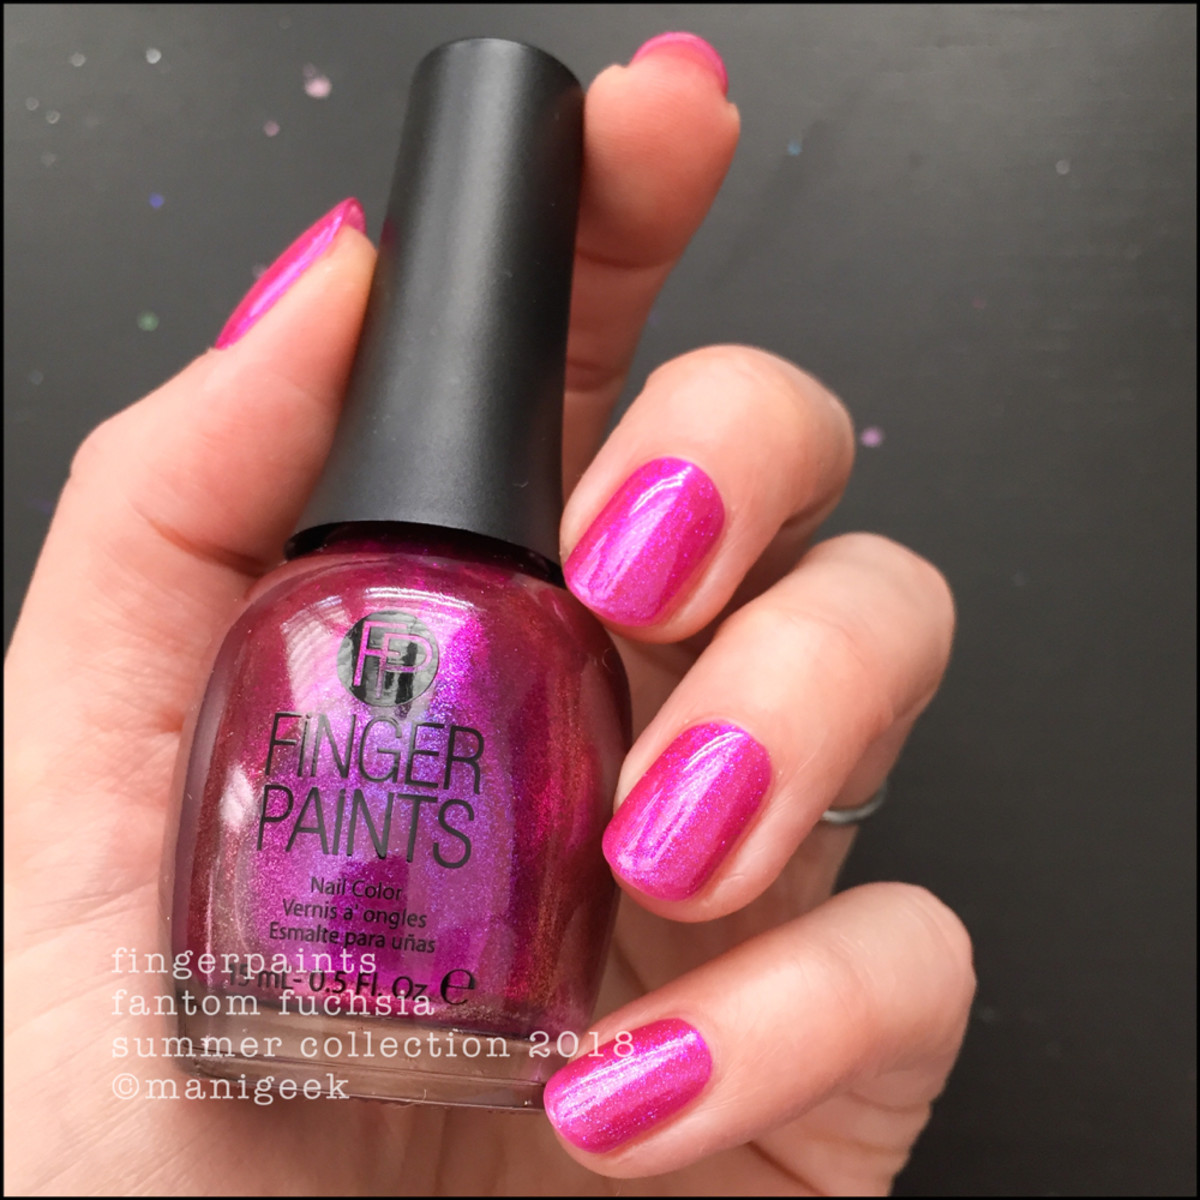 FingerPaints Fantom Fuchsia Nail Polish Summer 2018